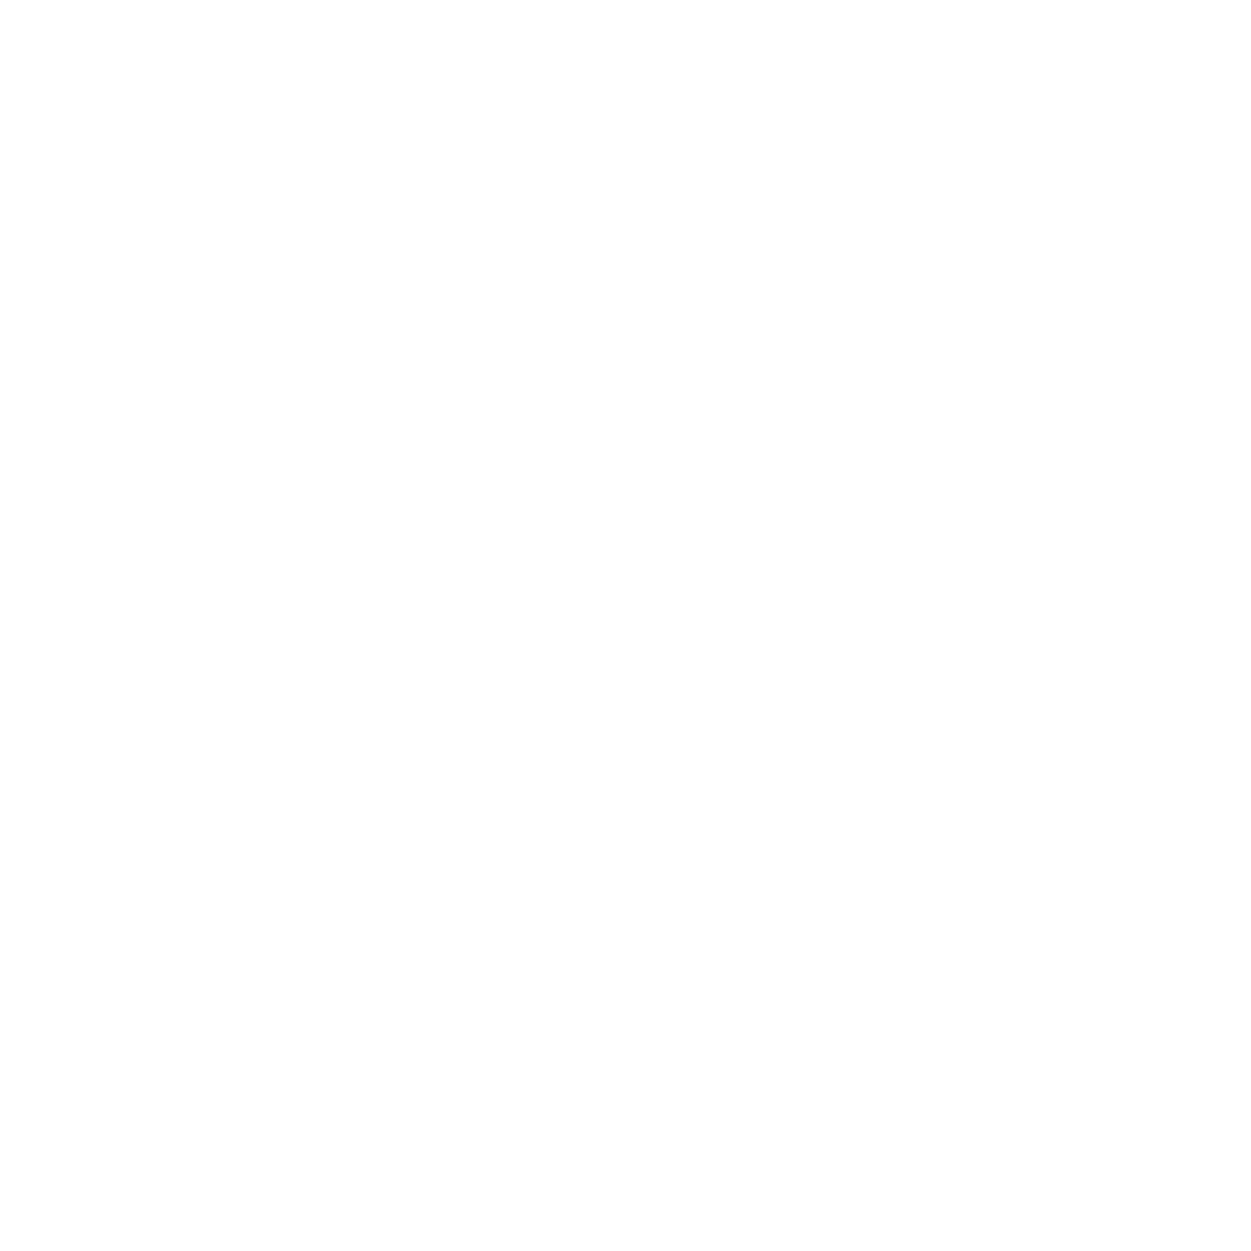 inspire-group